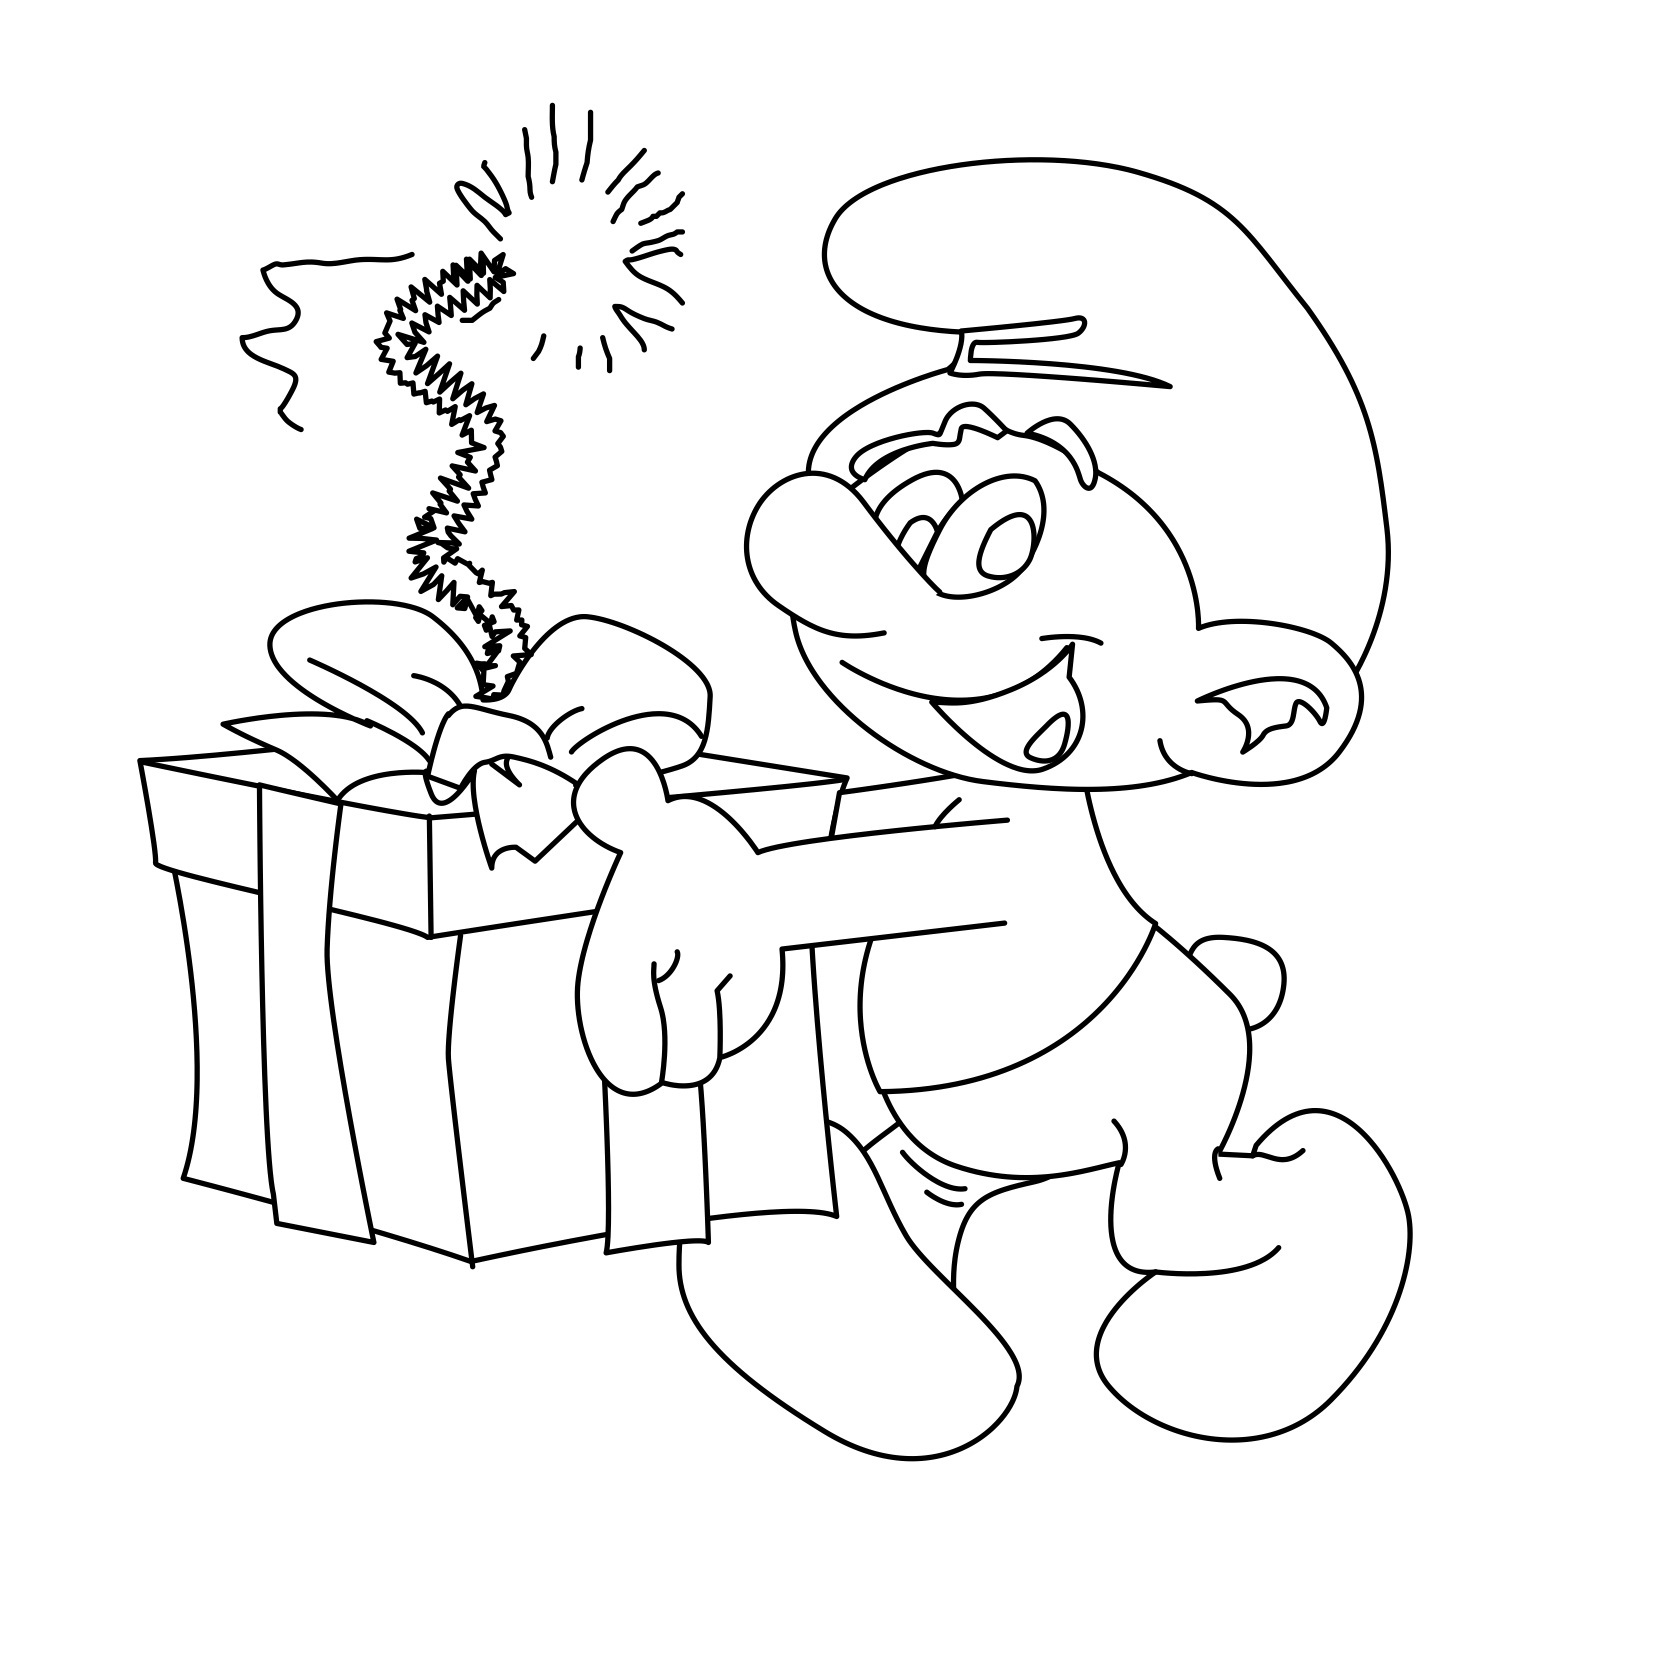 Free printable smurf coloring pages for kids for Free online coloring pages to color online